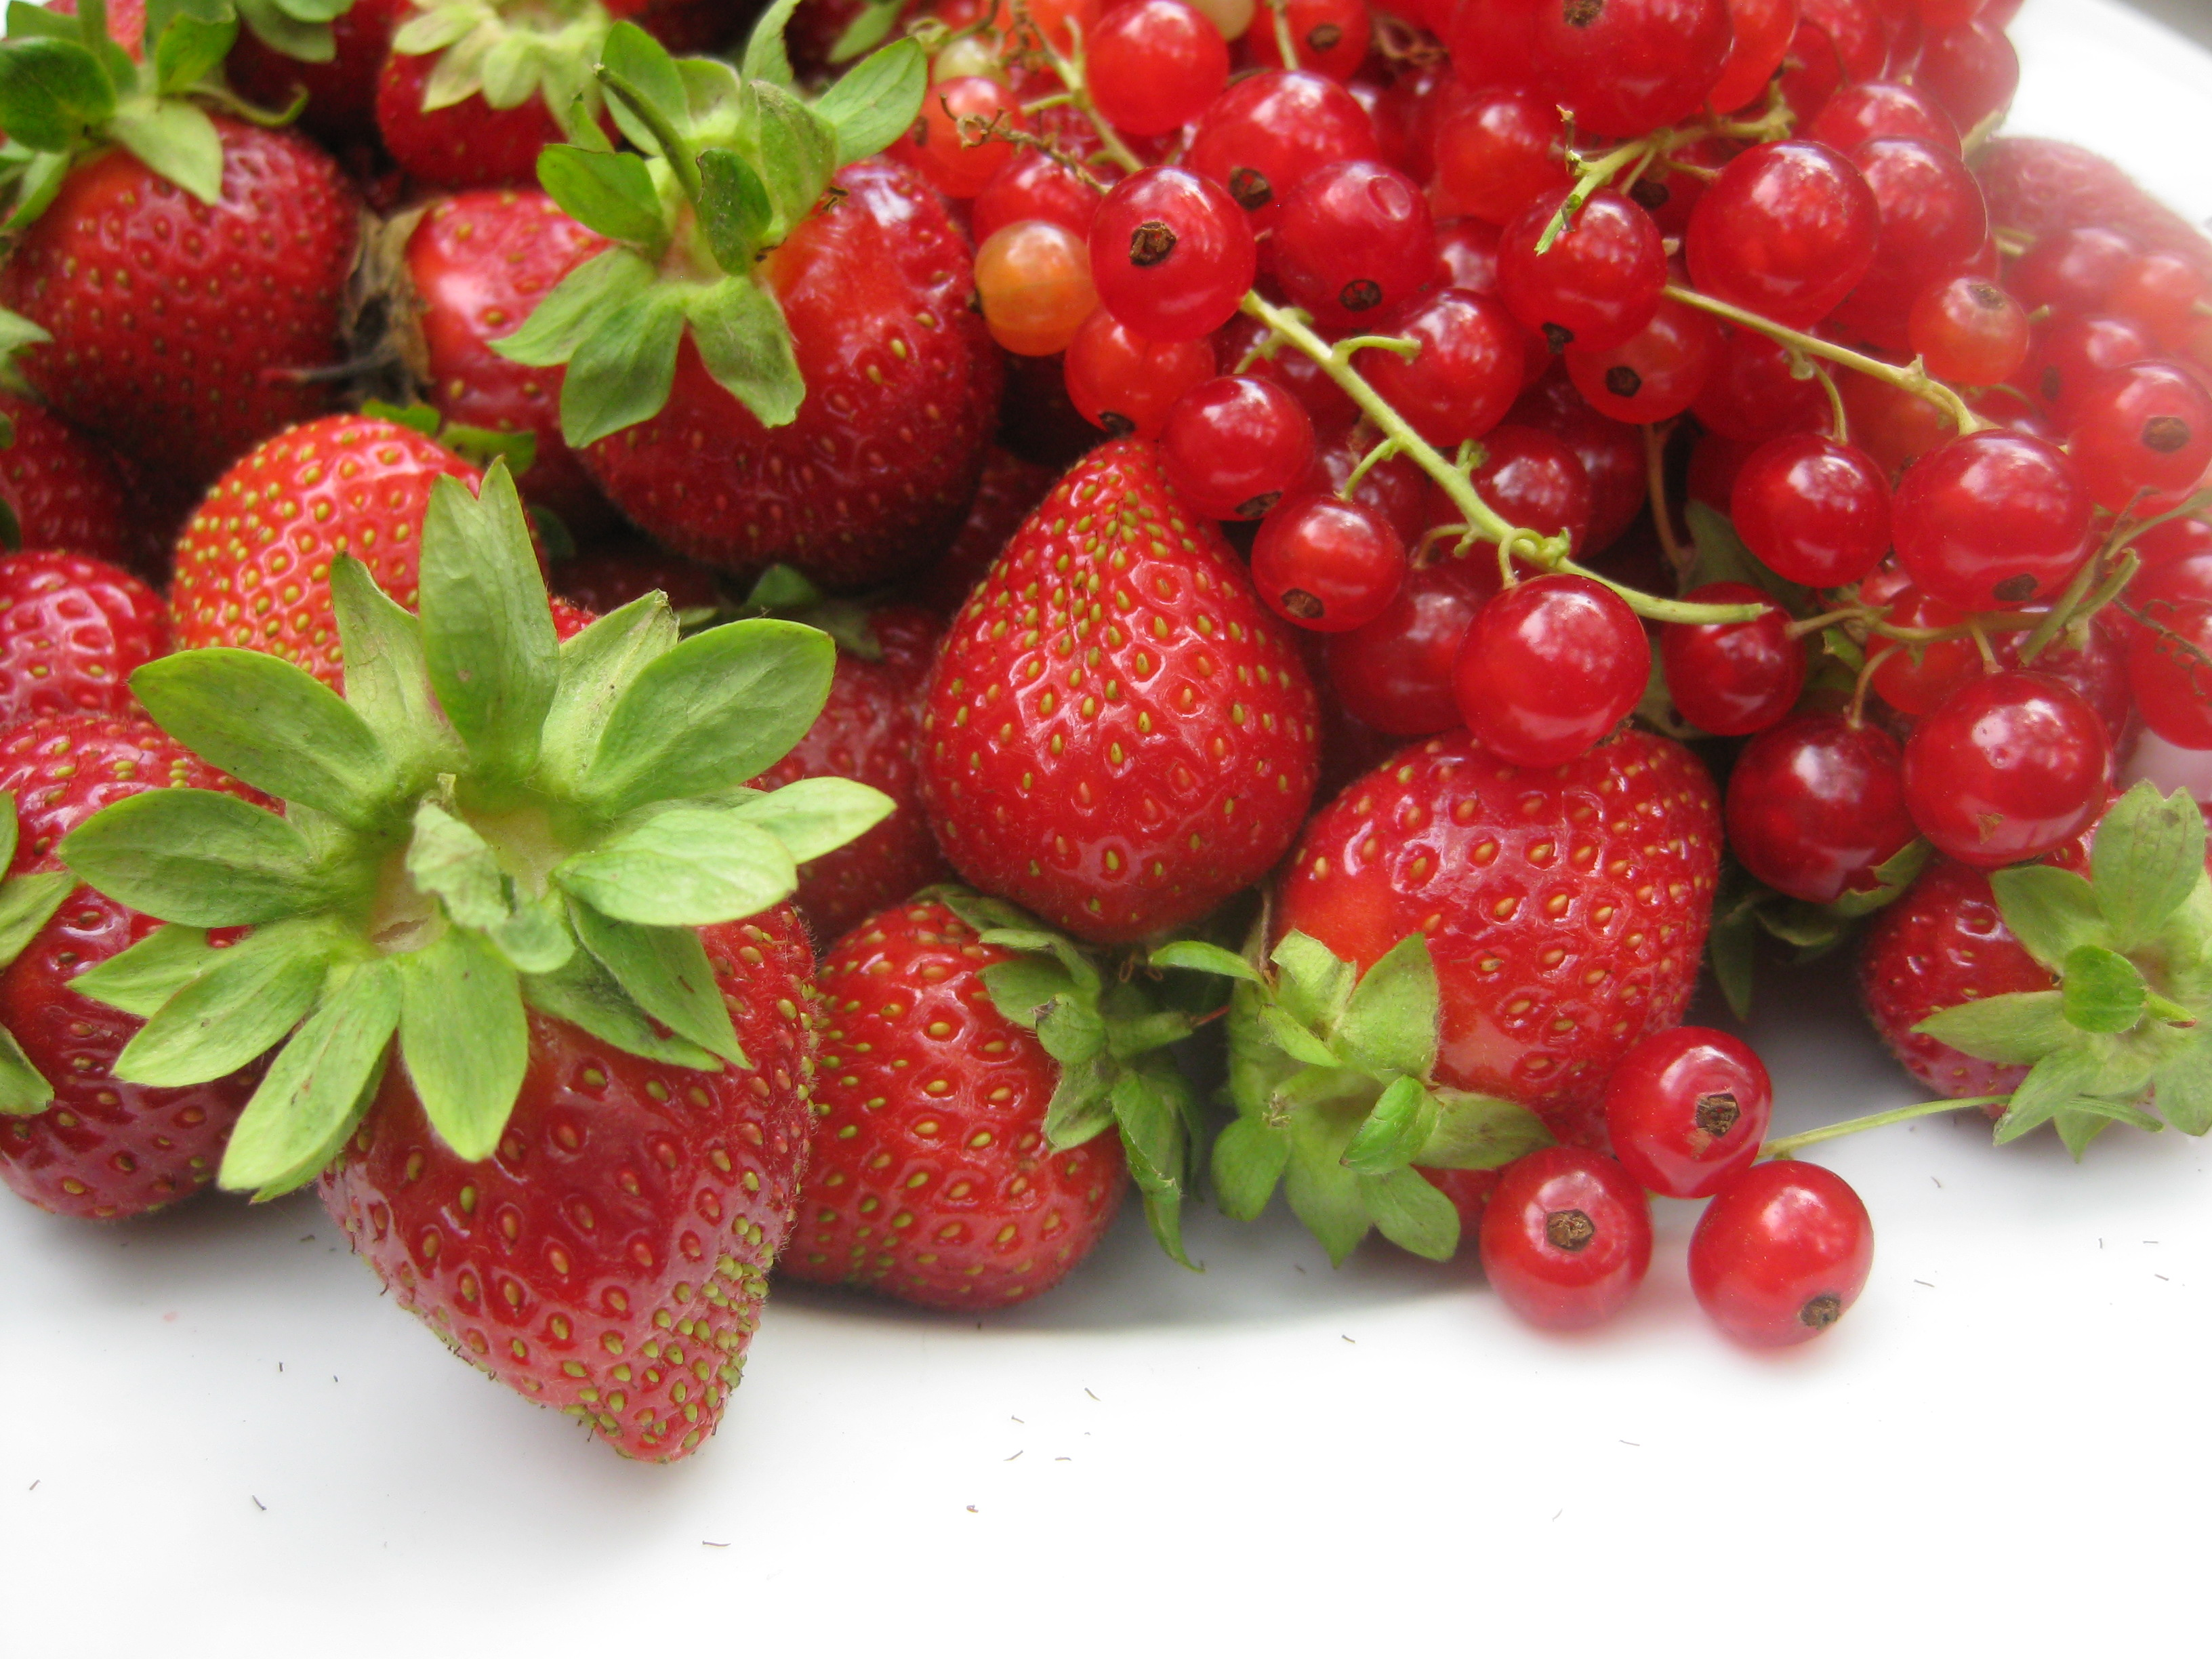 Red Currants and Strawberries on a Plate